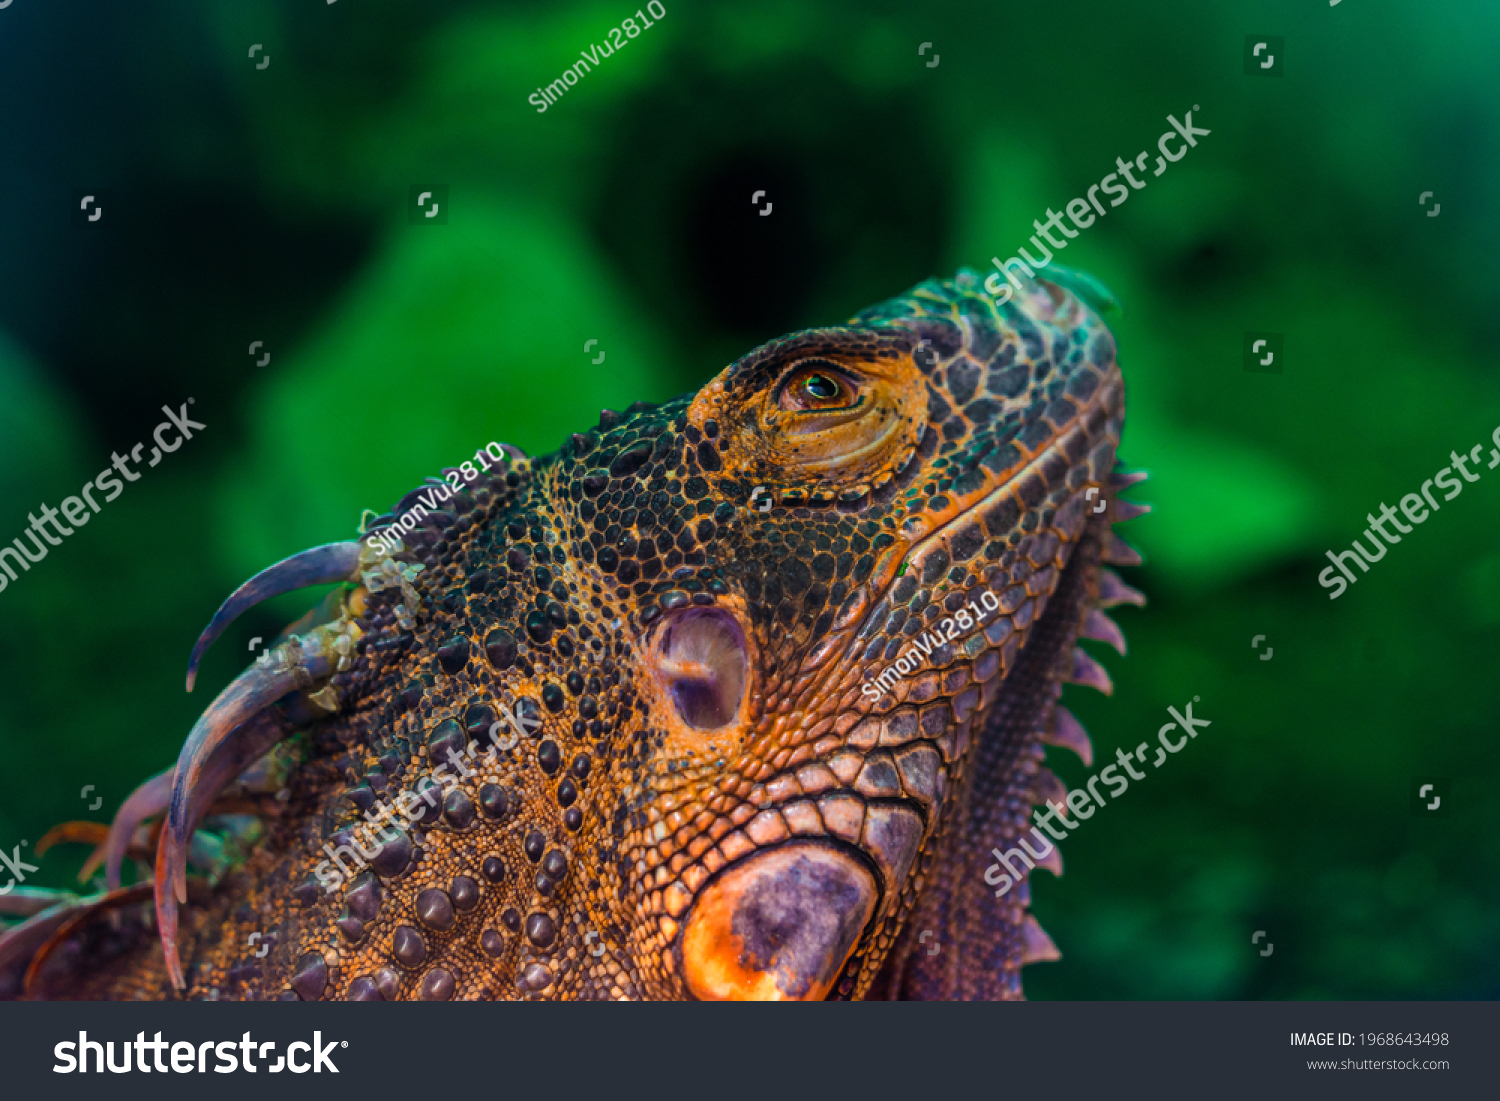 Green iguana. Iguana - also known as Common iguana or American iguana. Lizard families, look toward a bright eyes looking in the same direction as we find something new life. Selective focus. #1968643498